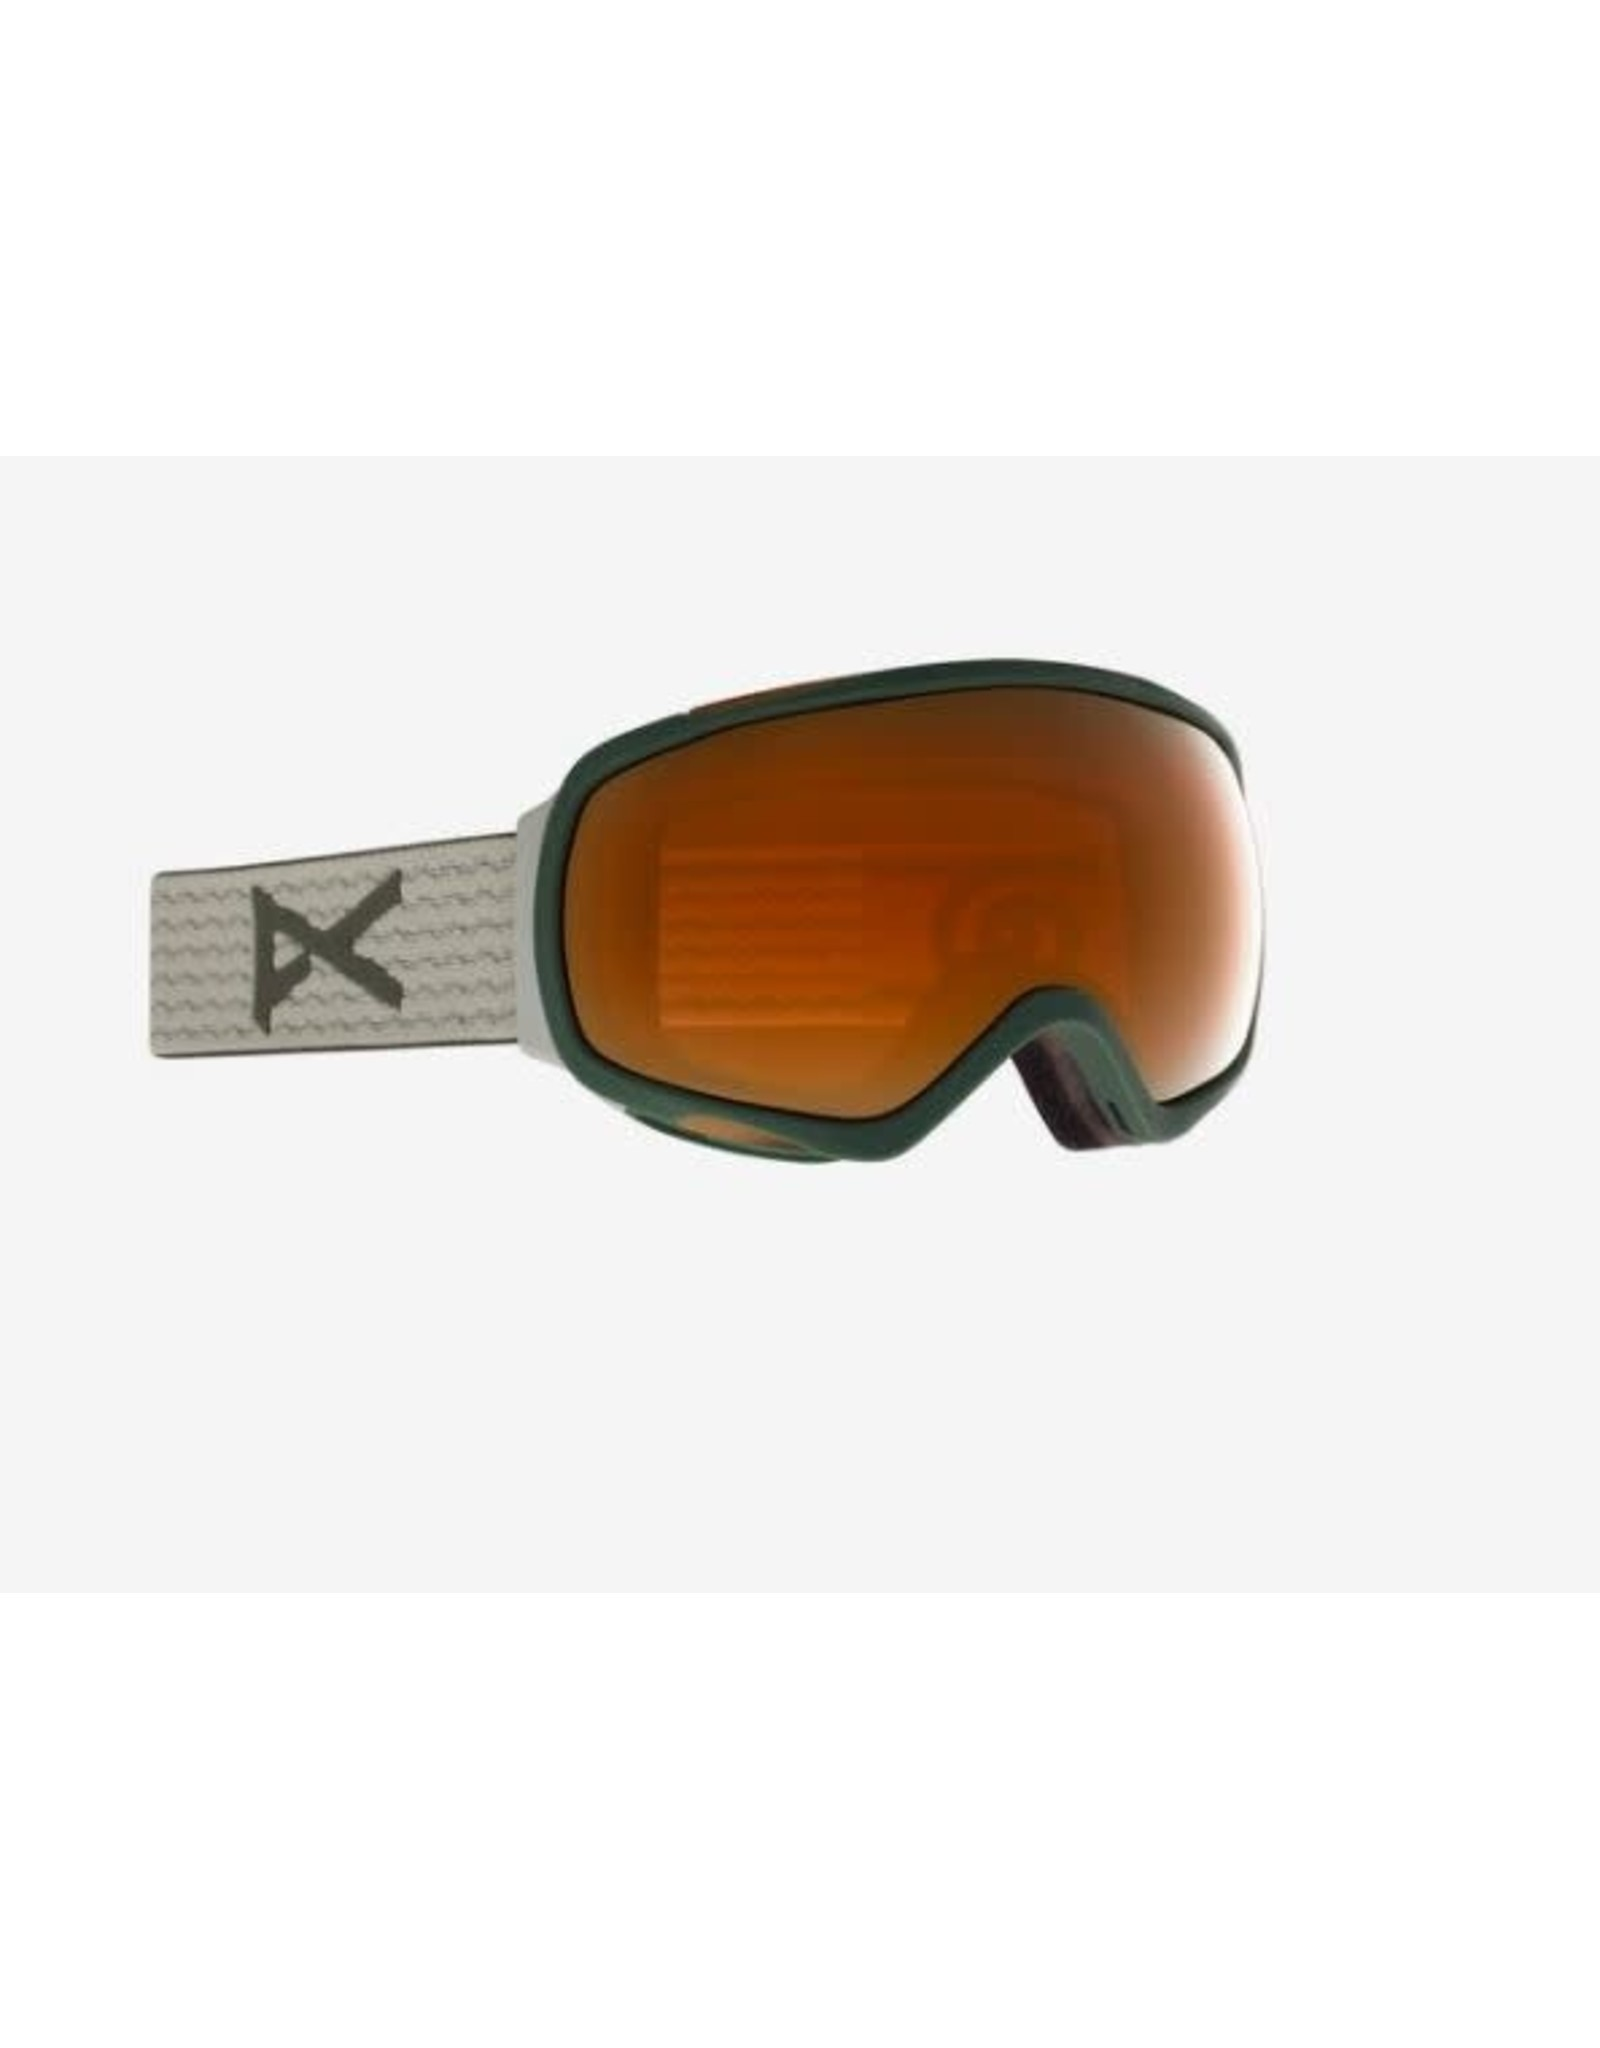 Anon Anon - Lunette snowboard femme tempest sage/sunny bronze + spare lens